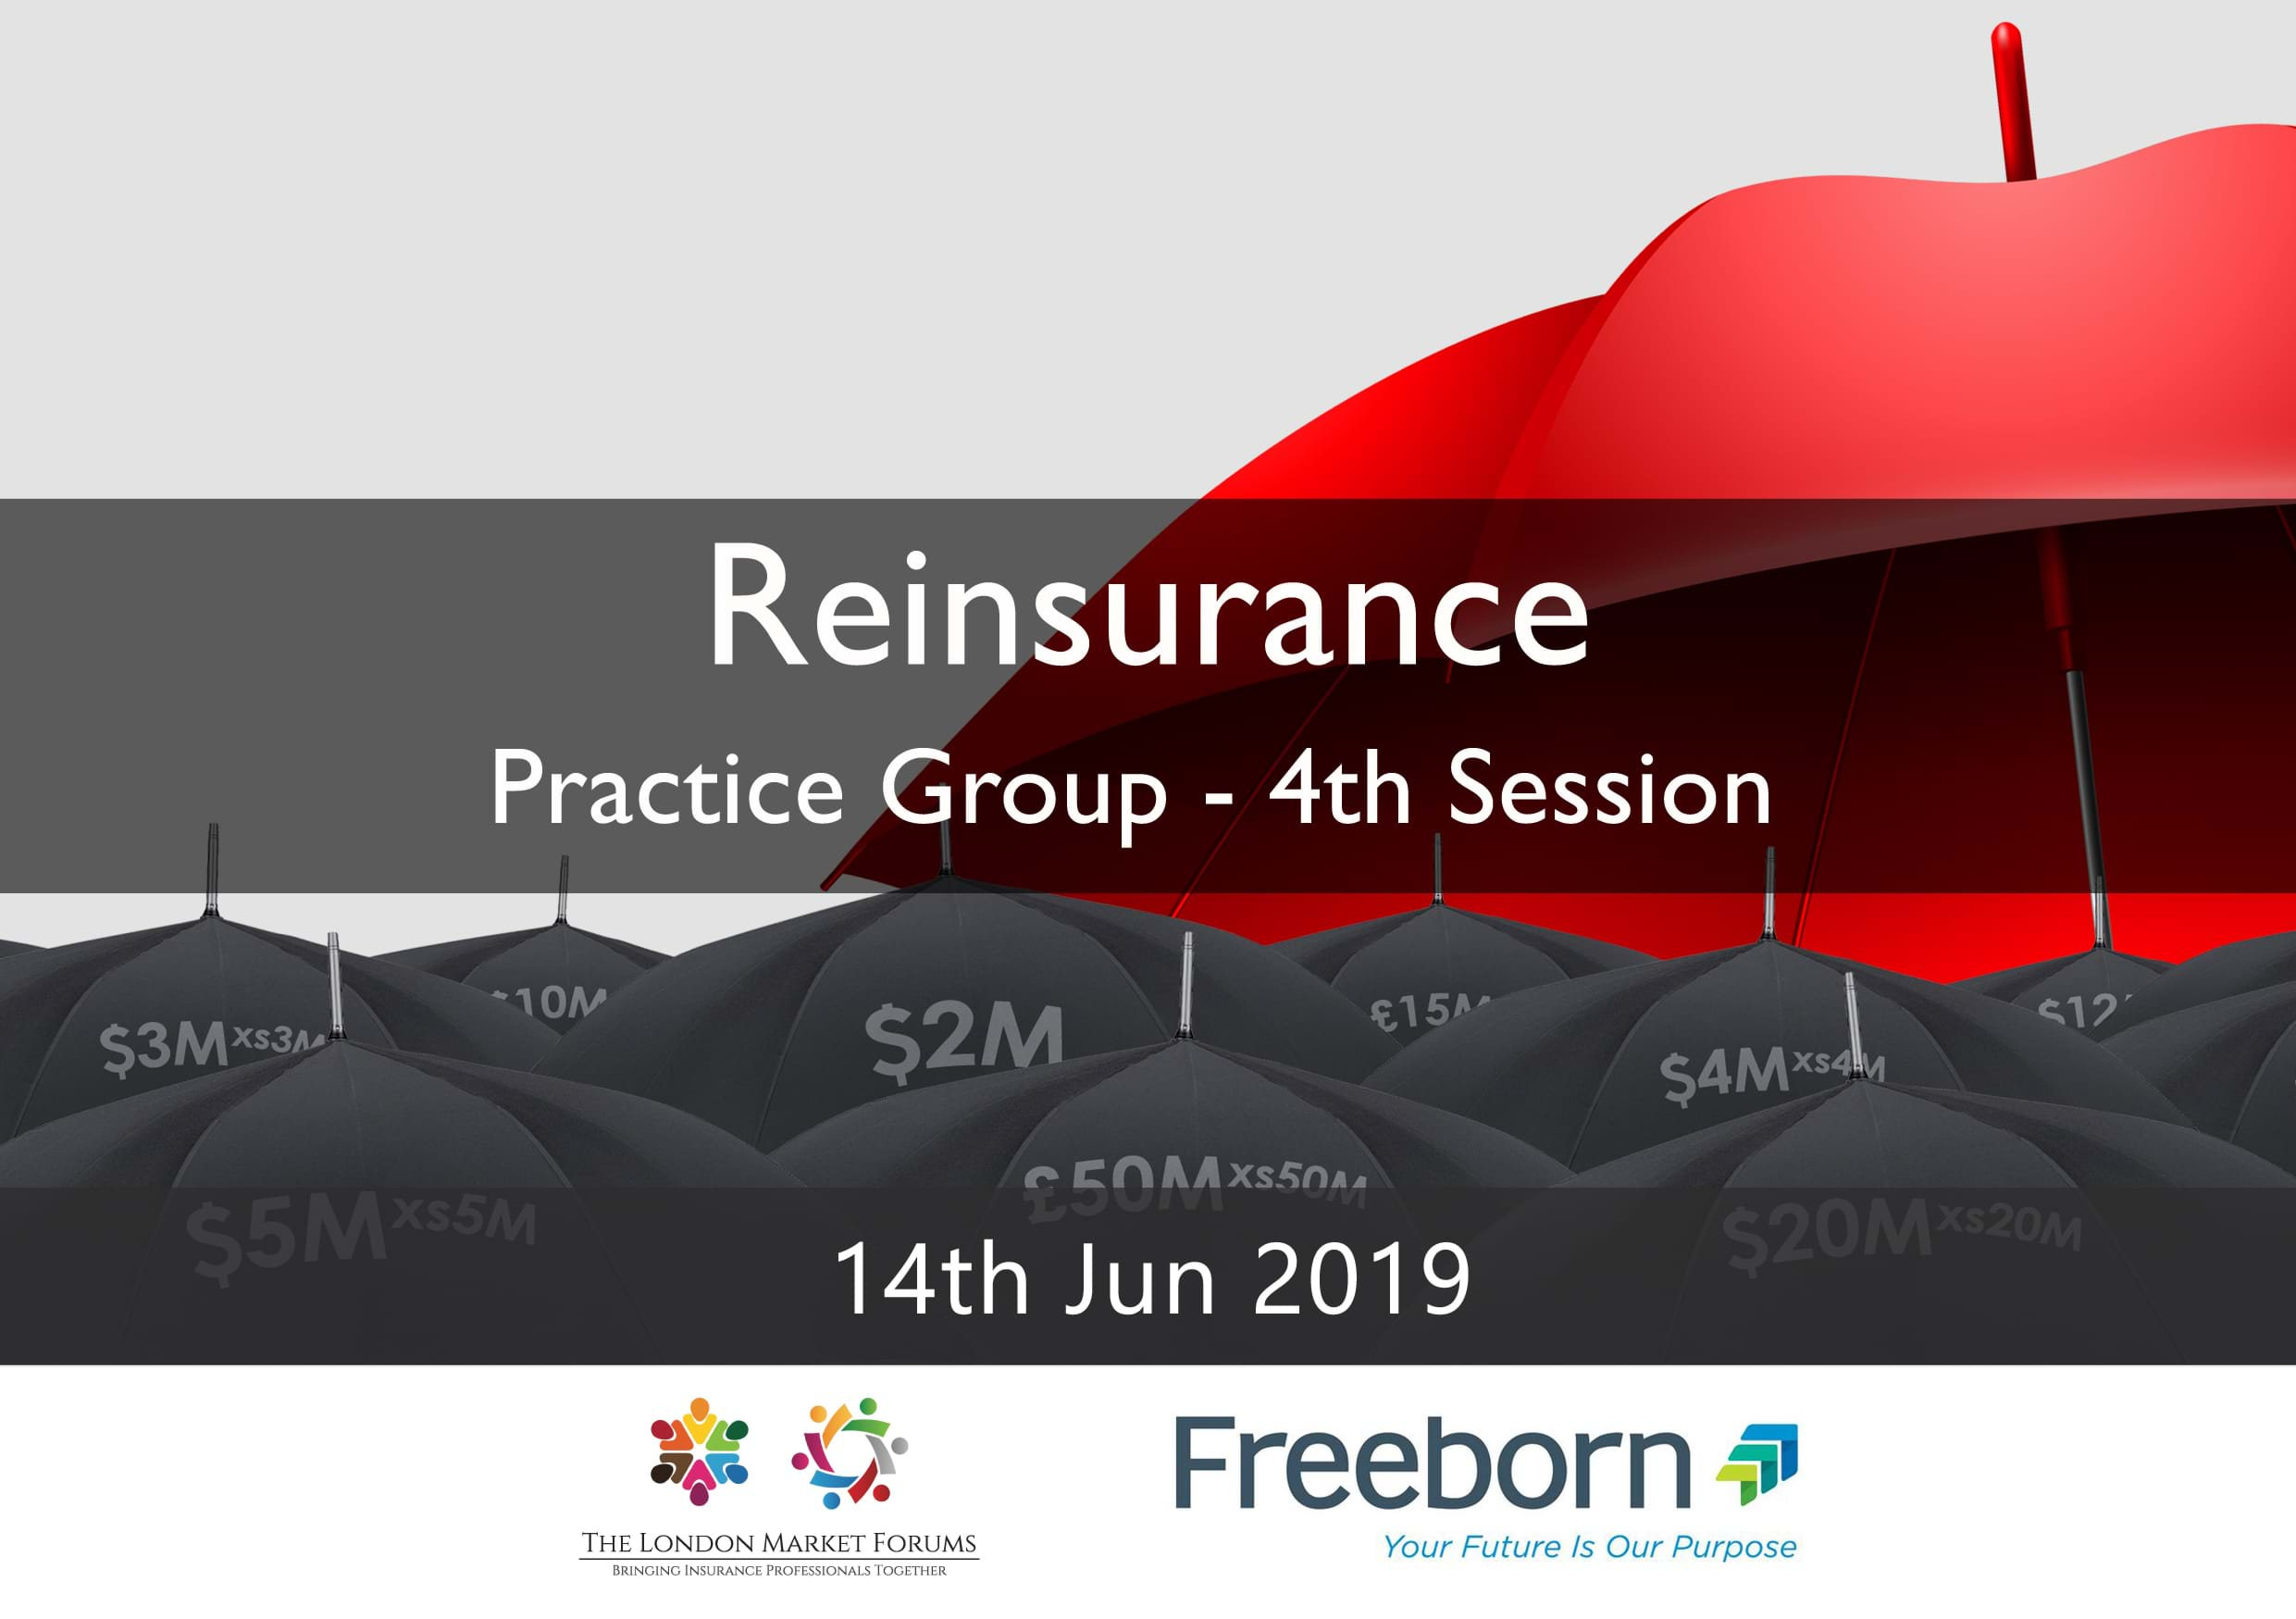 Reinsurance Practice Group - 14th June 2019